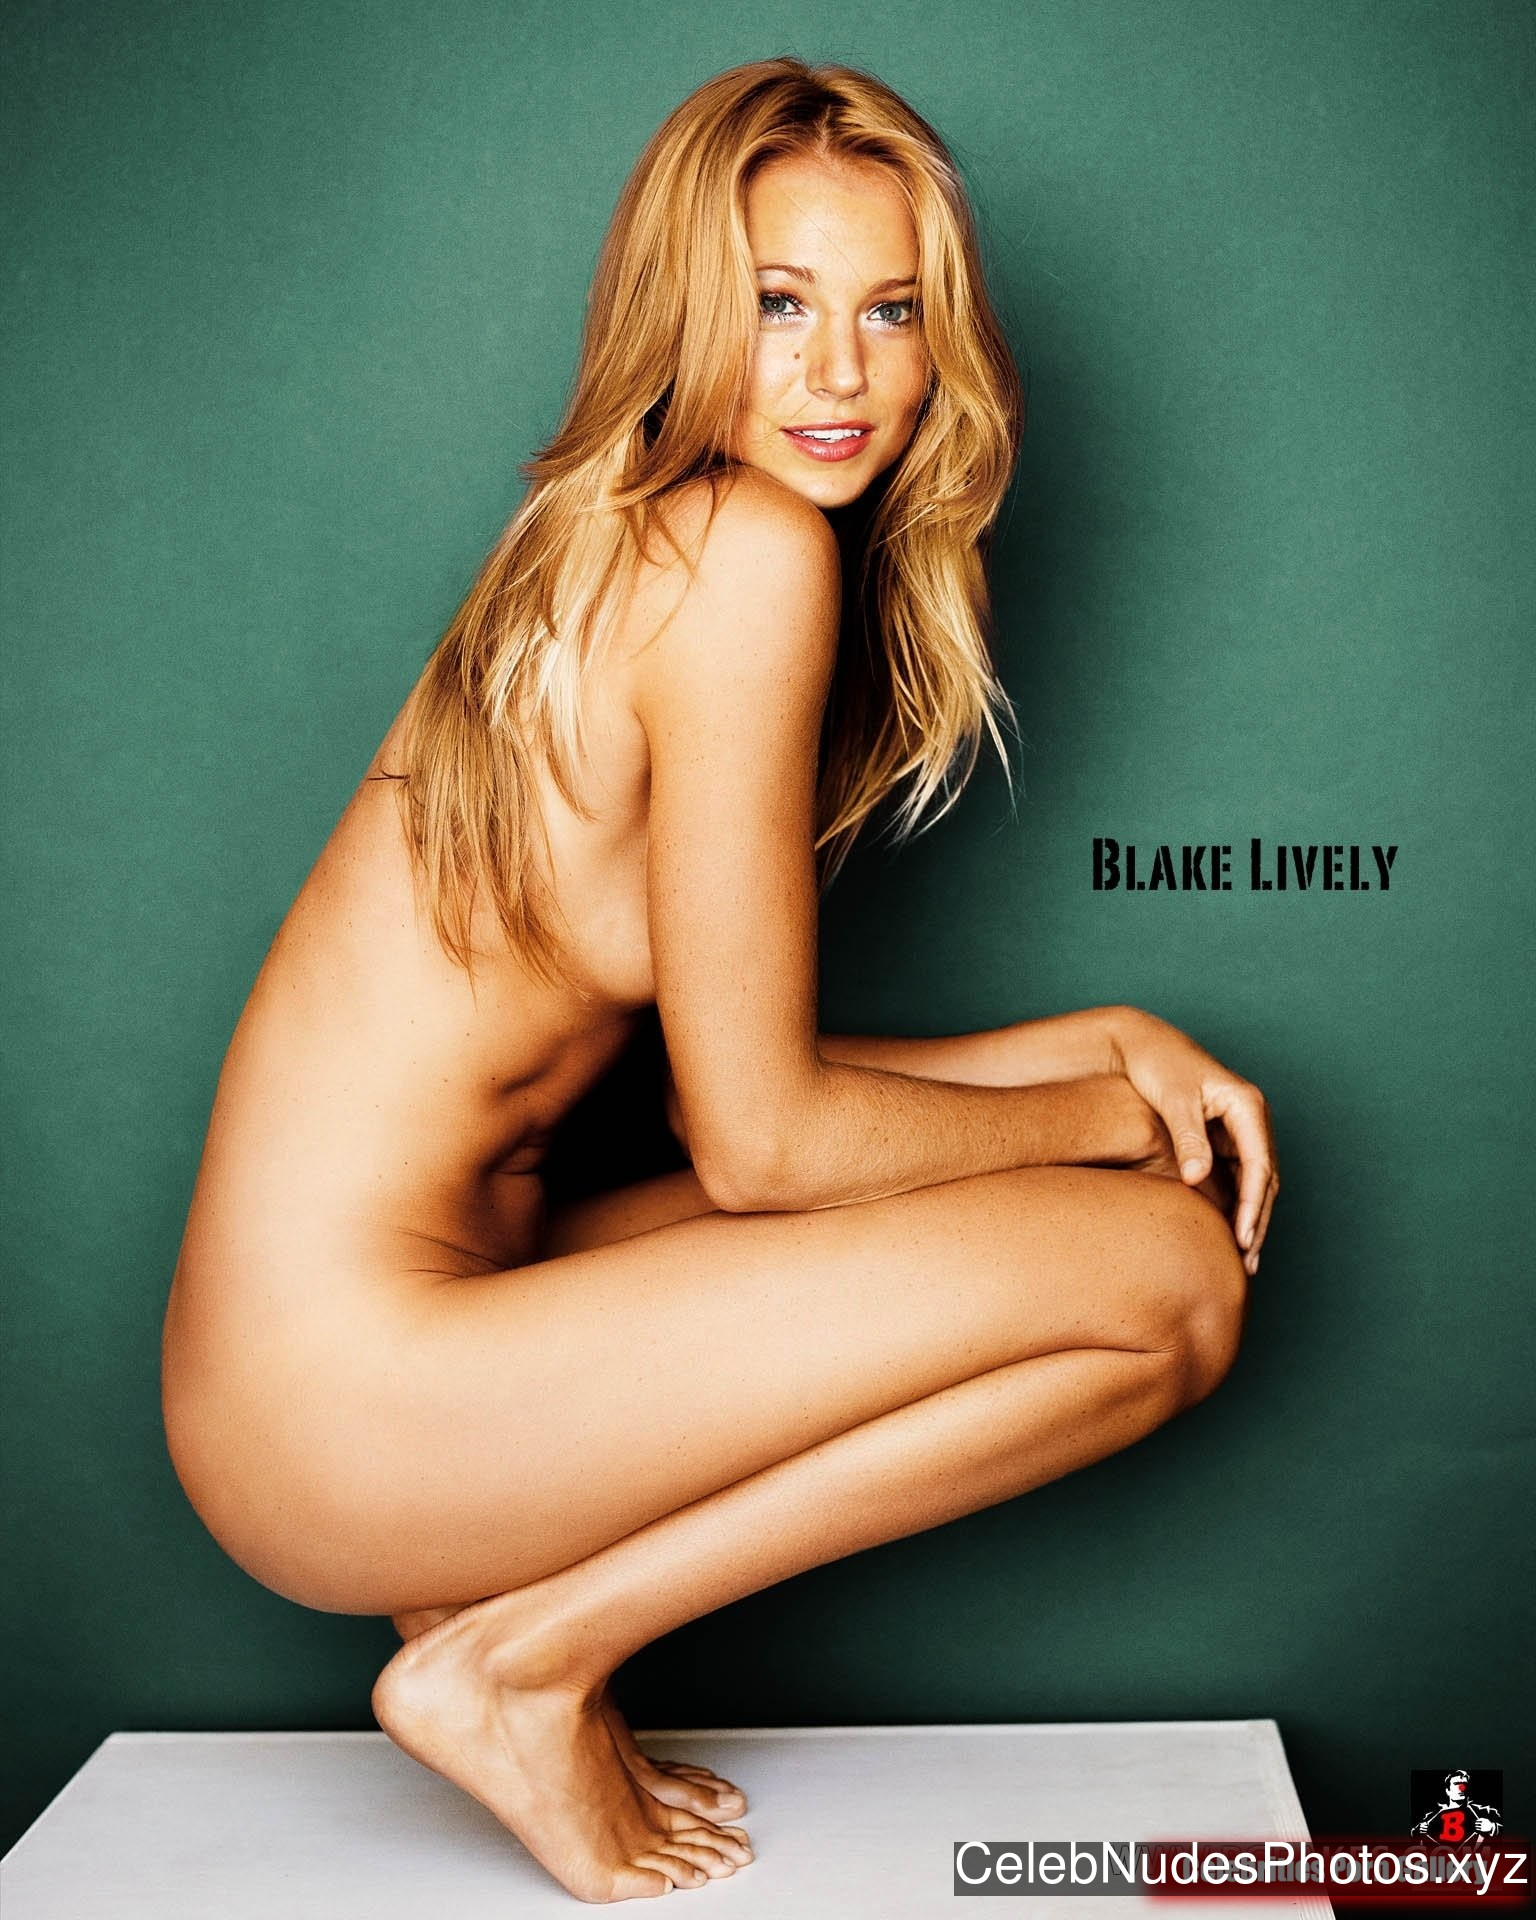 Blake Lively Nude Celeb sexy 18